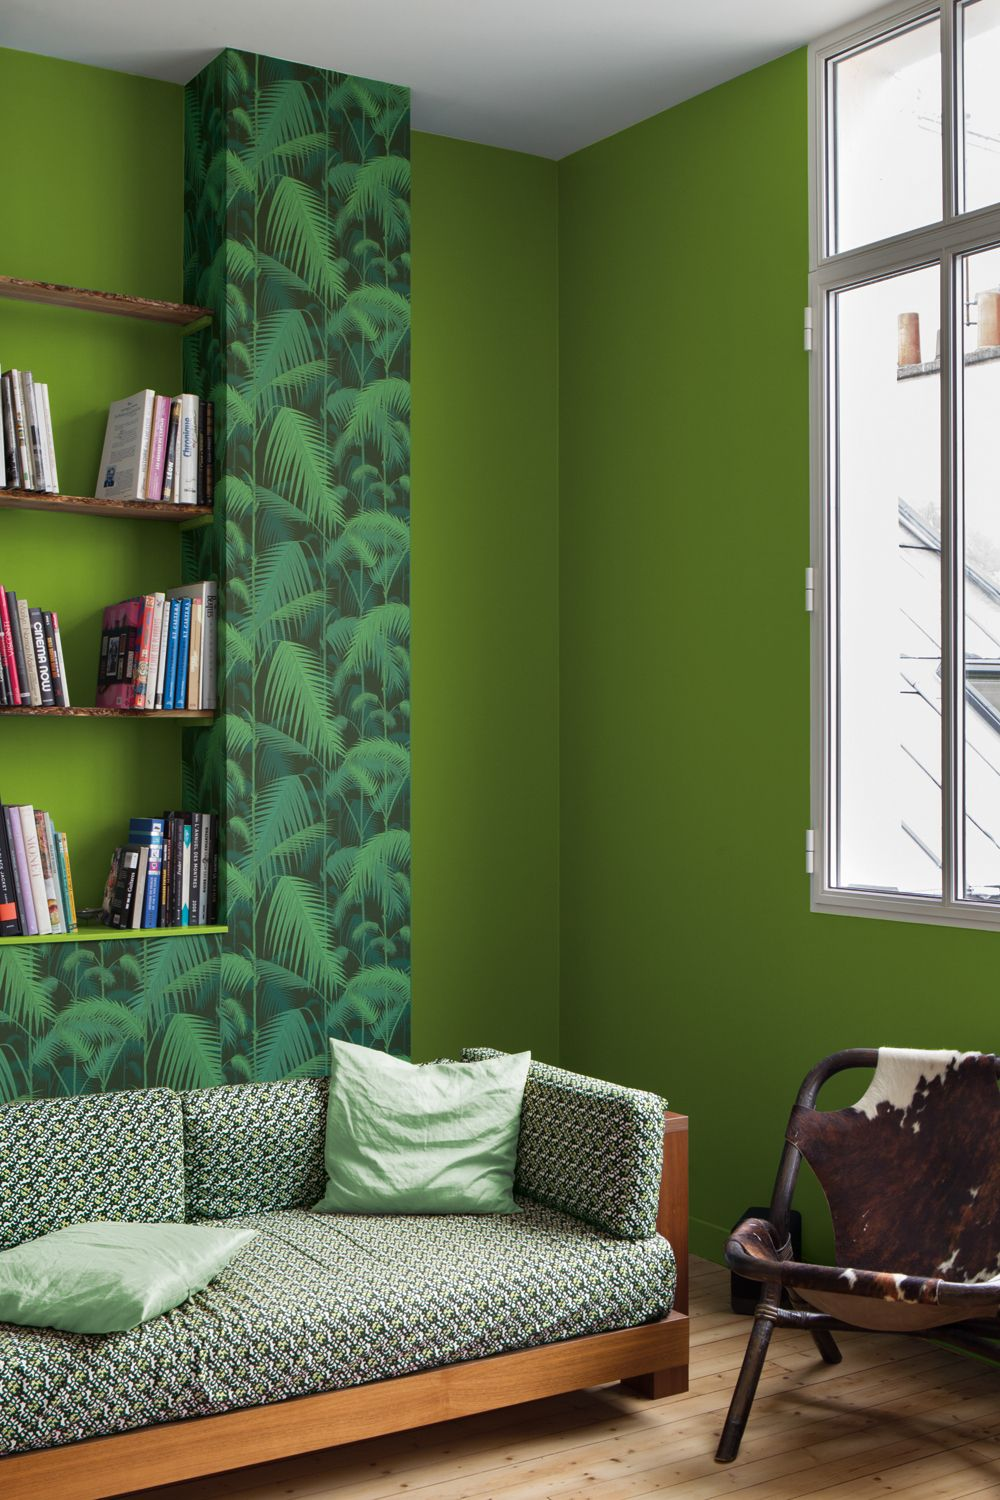 One Of My Favourite Cole Son Wallpapers Works Perfectly Next To These Bright Green Walls